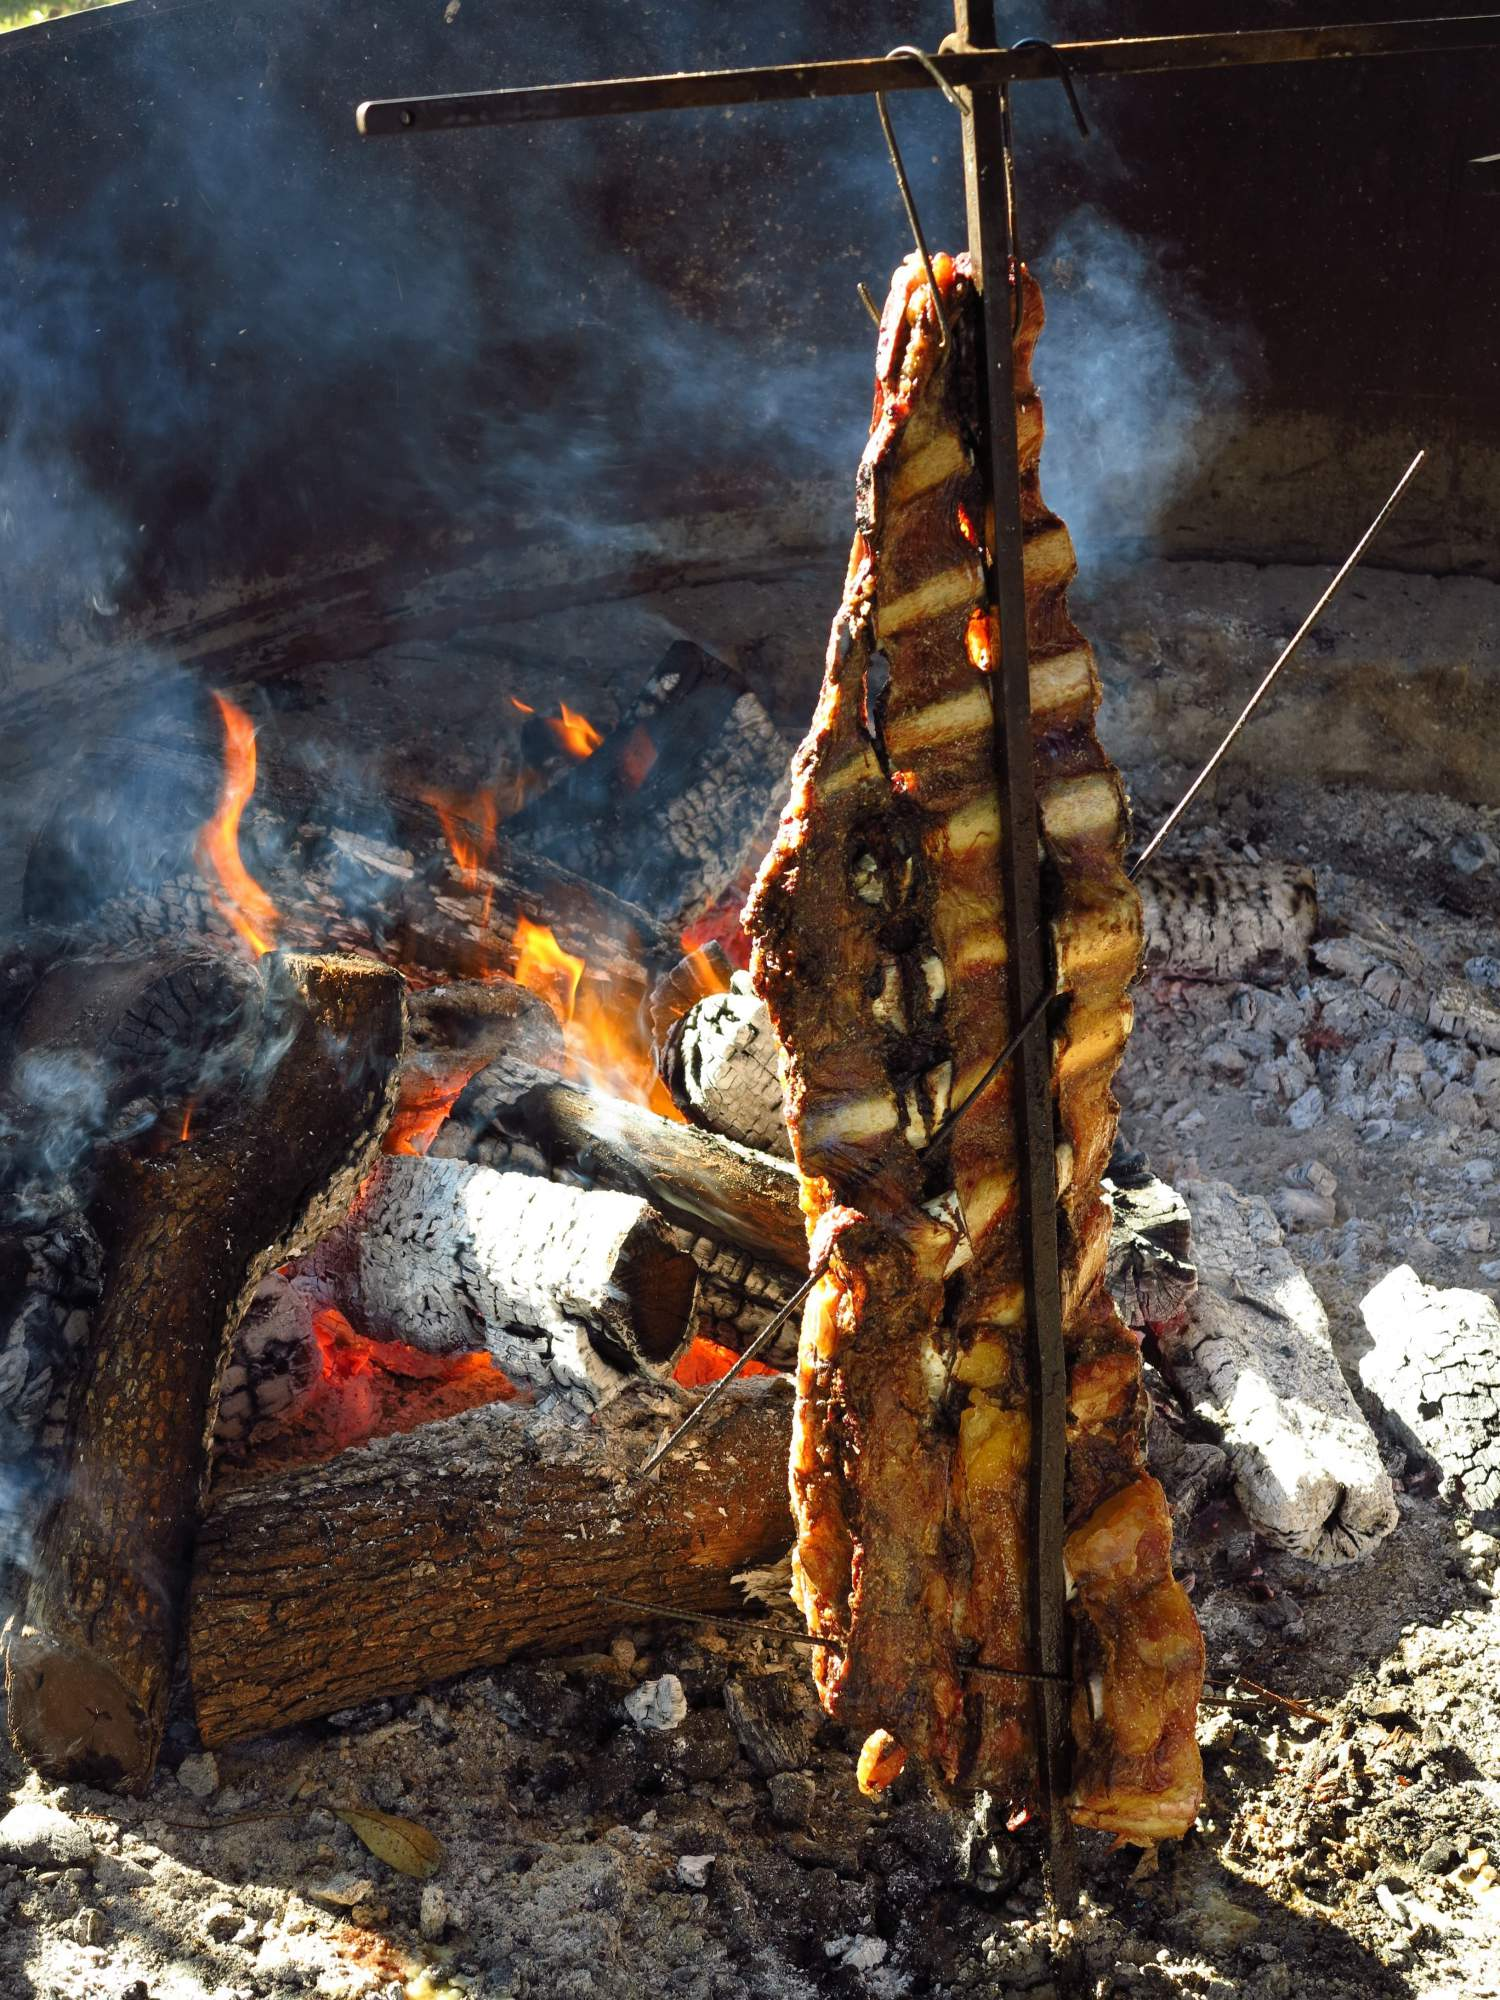 Classic Argentinian barbecue